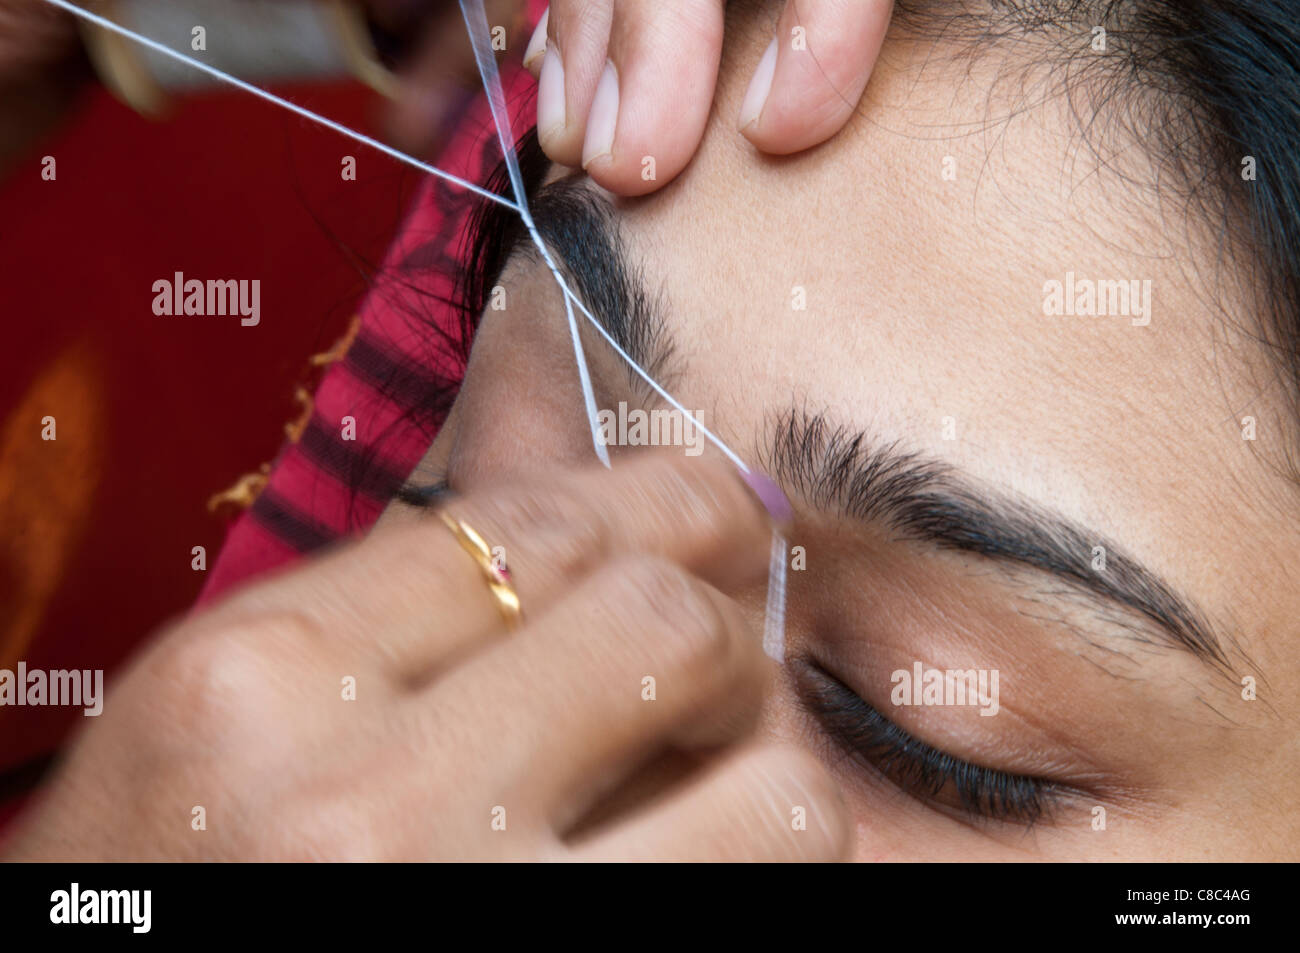 Eyebrow Threading Stock Photo 39604840 Alamy